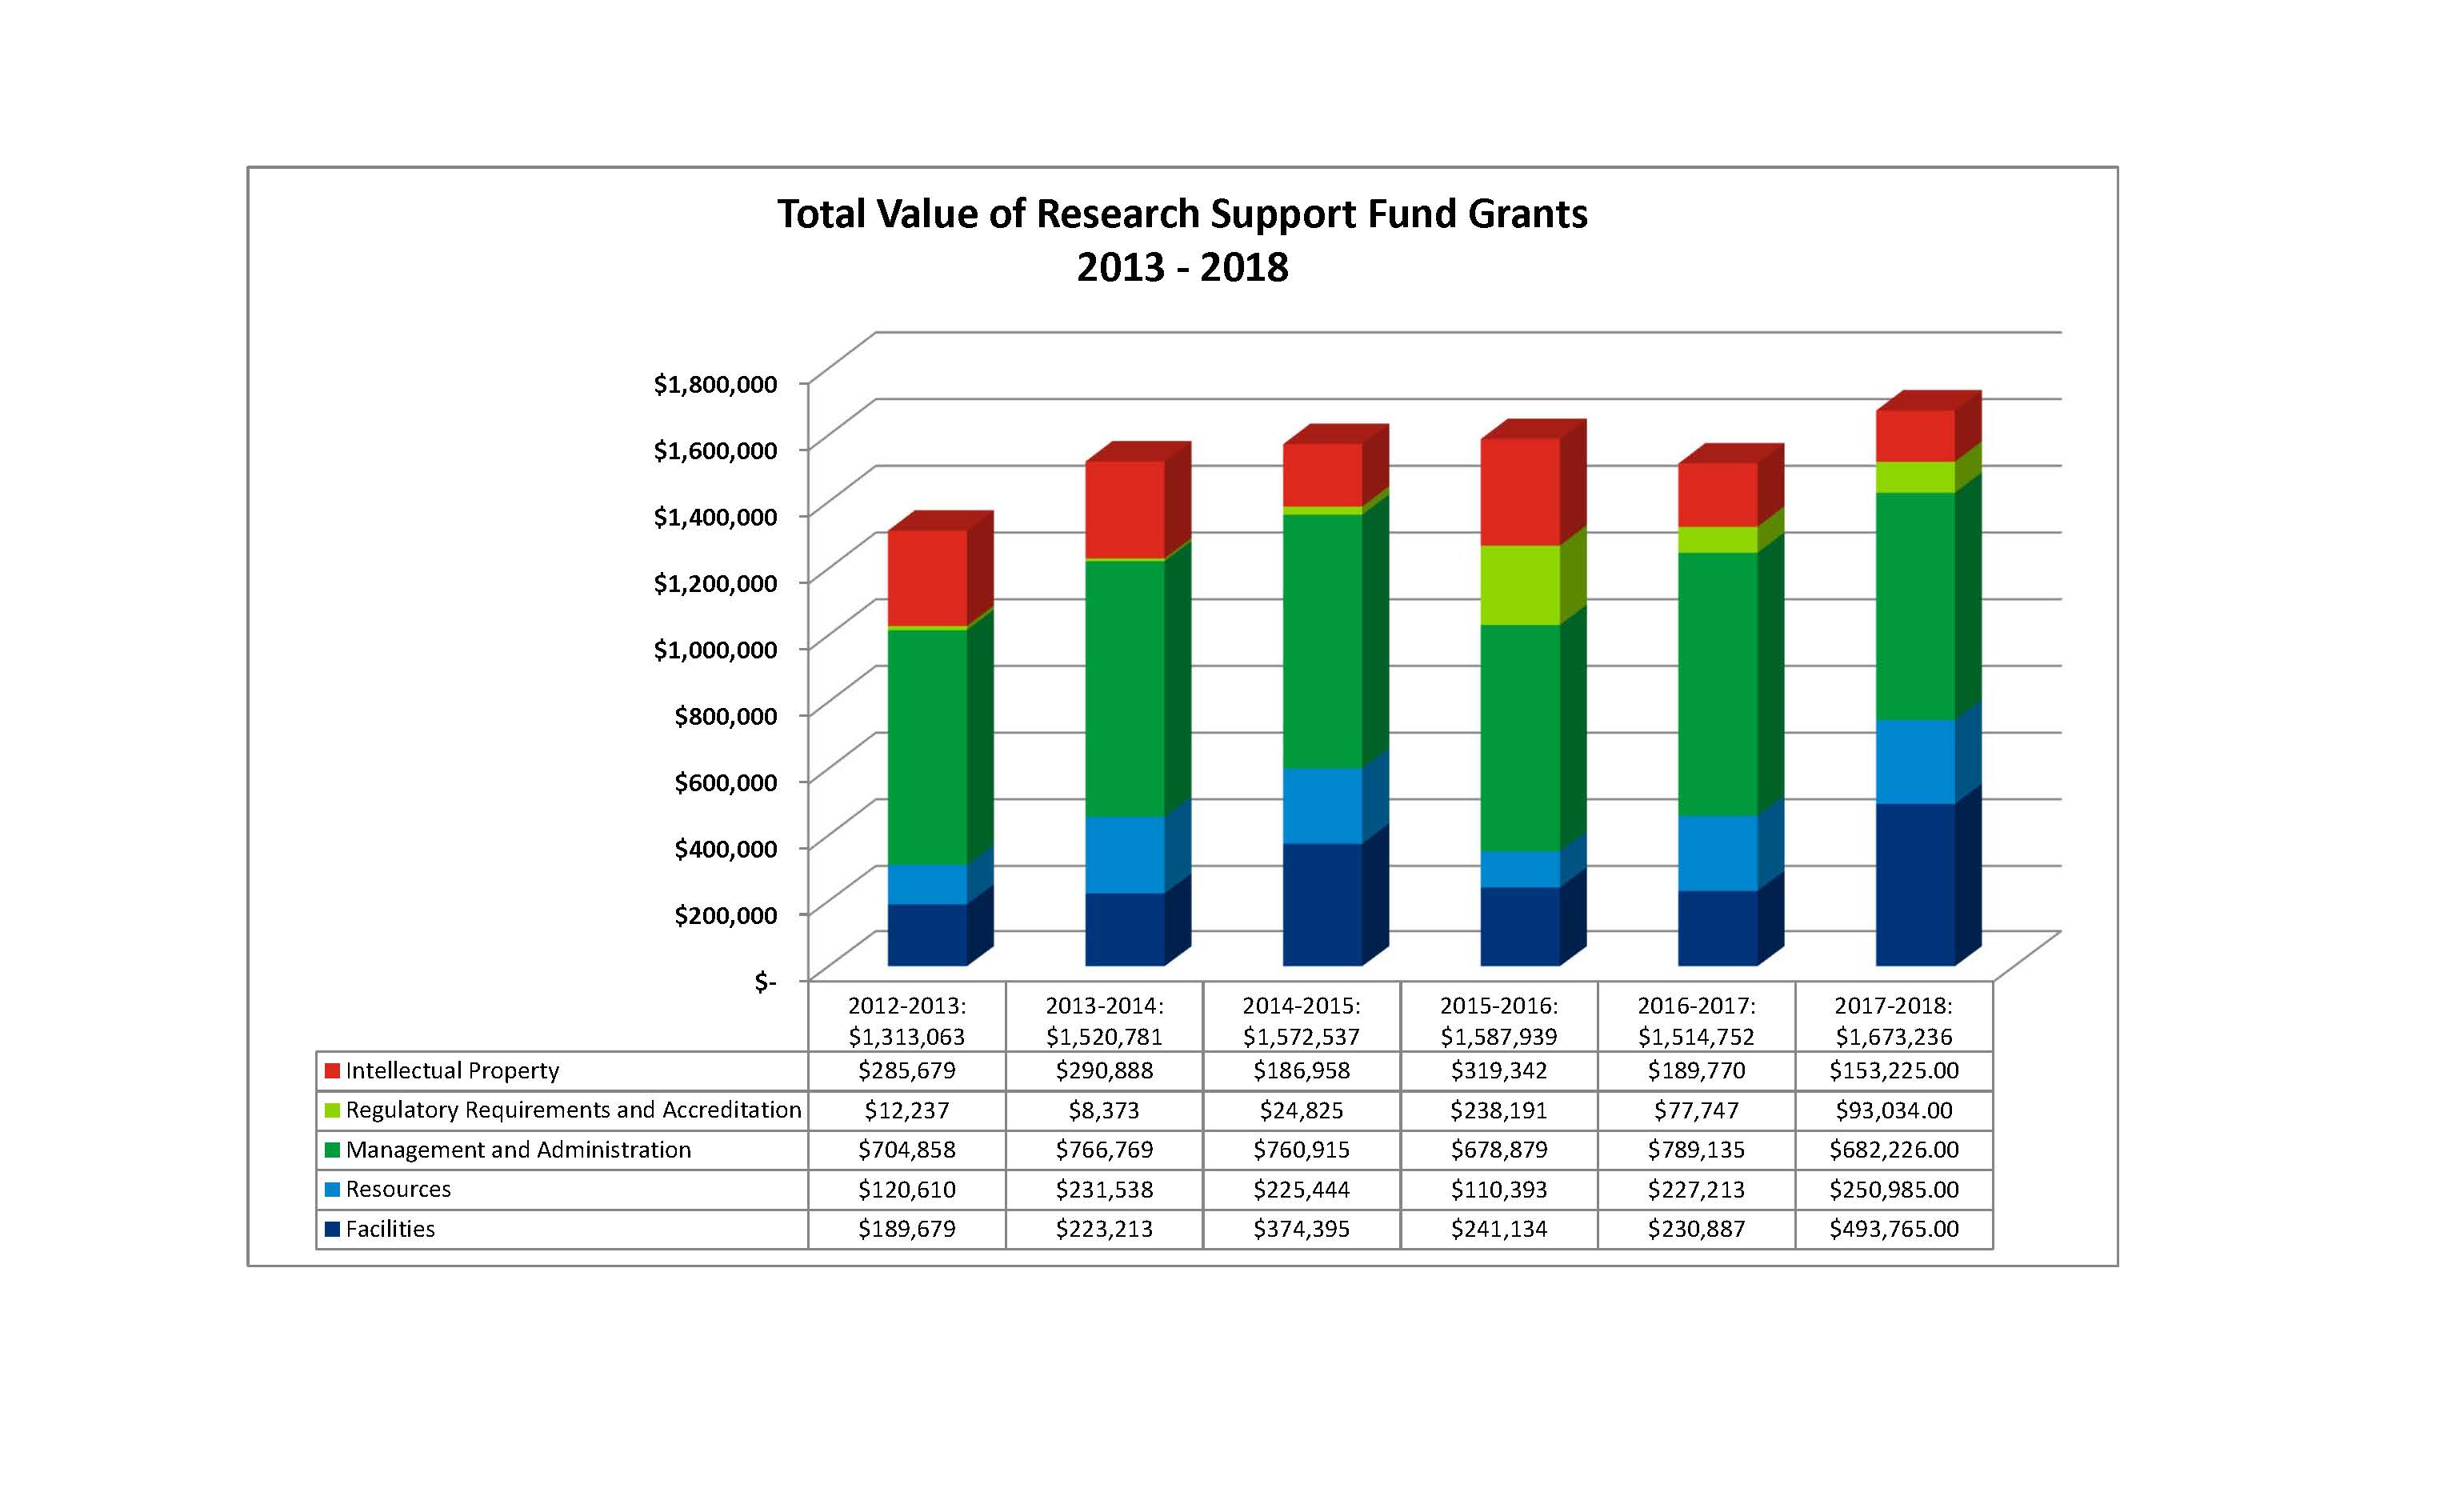 Total value of Research Support Fund Grant at Ontario Tech University 2013-2017